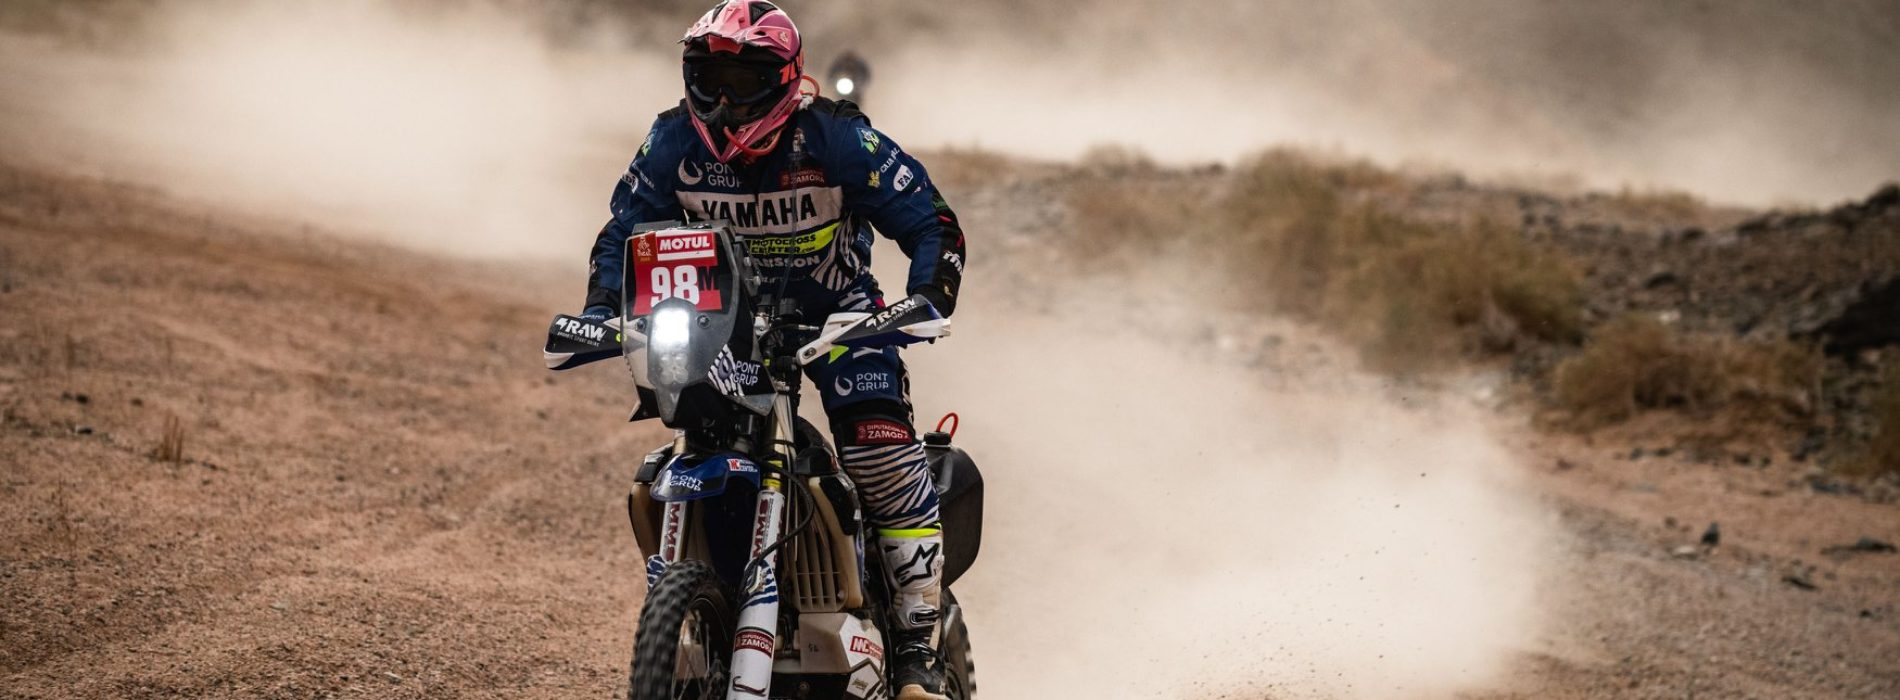 MXLink Live speaks with Sara Garcia on what it takes to race Dakar 'Unassisted' category 2020